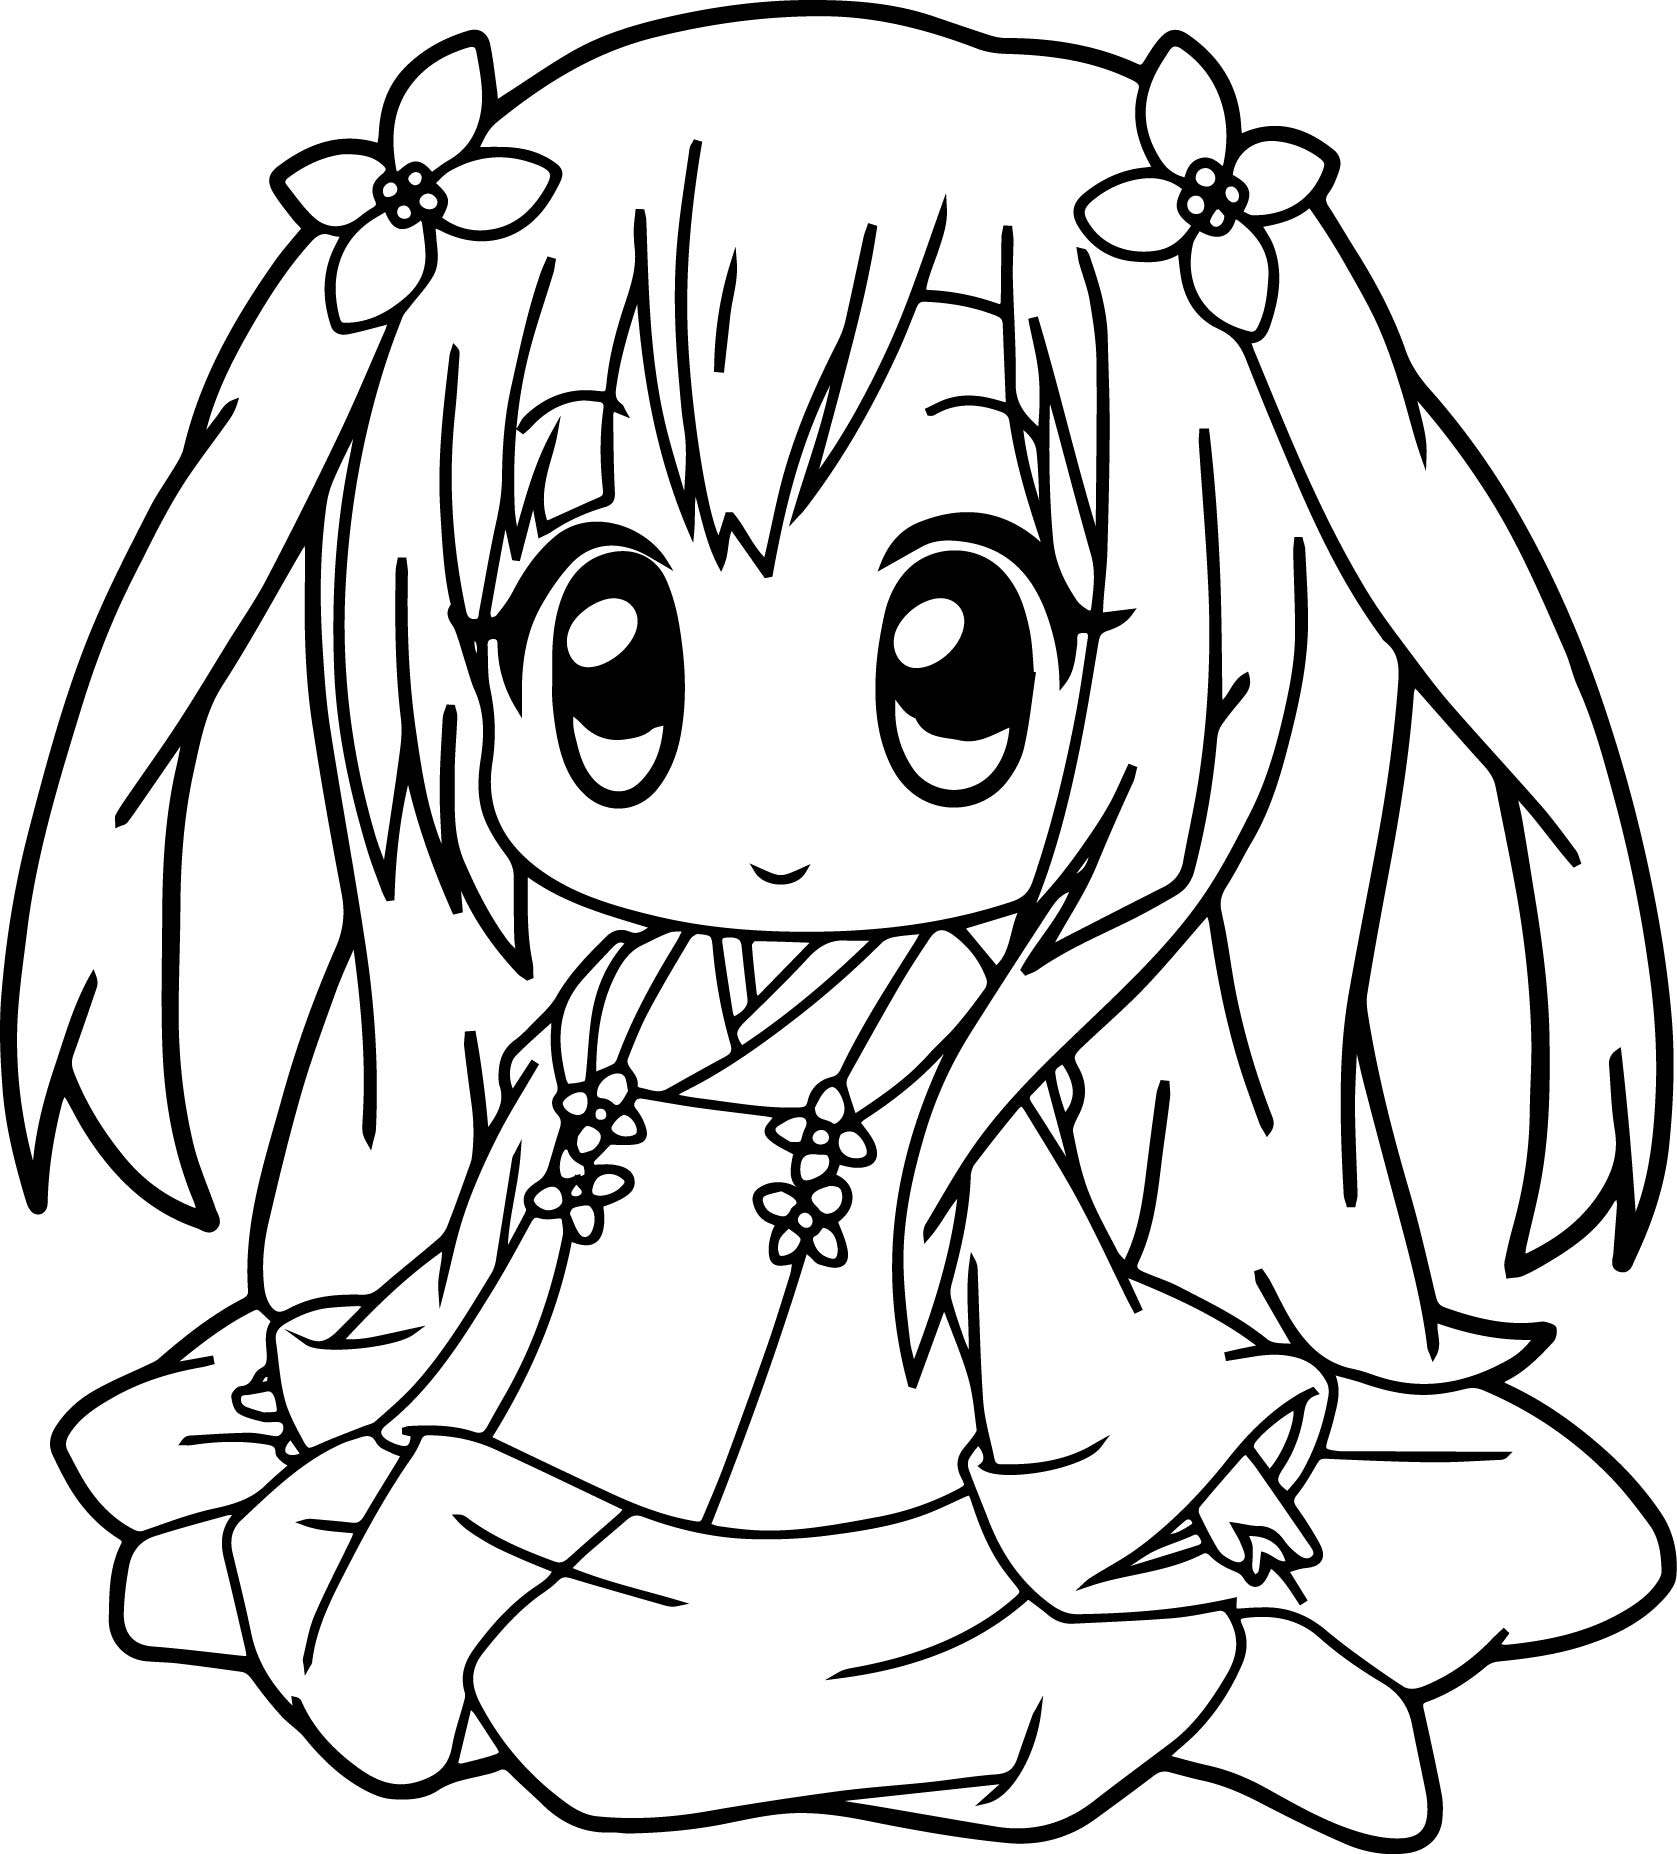 anime kawaii girl coloring pages pin on fun coloring sheet kawaii anime pages girl coloring